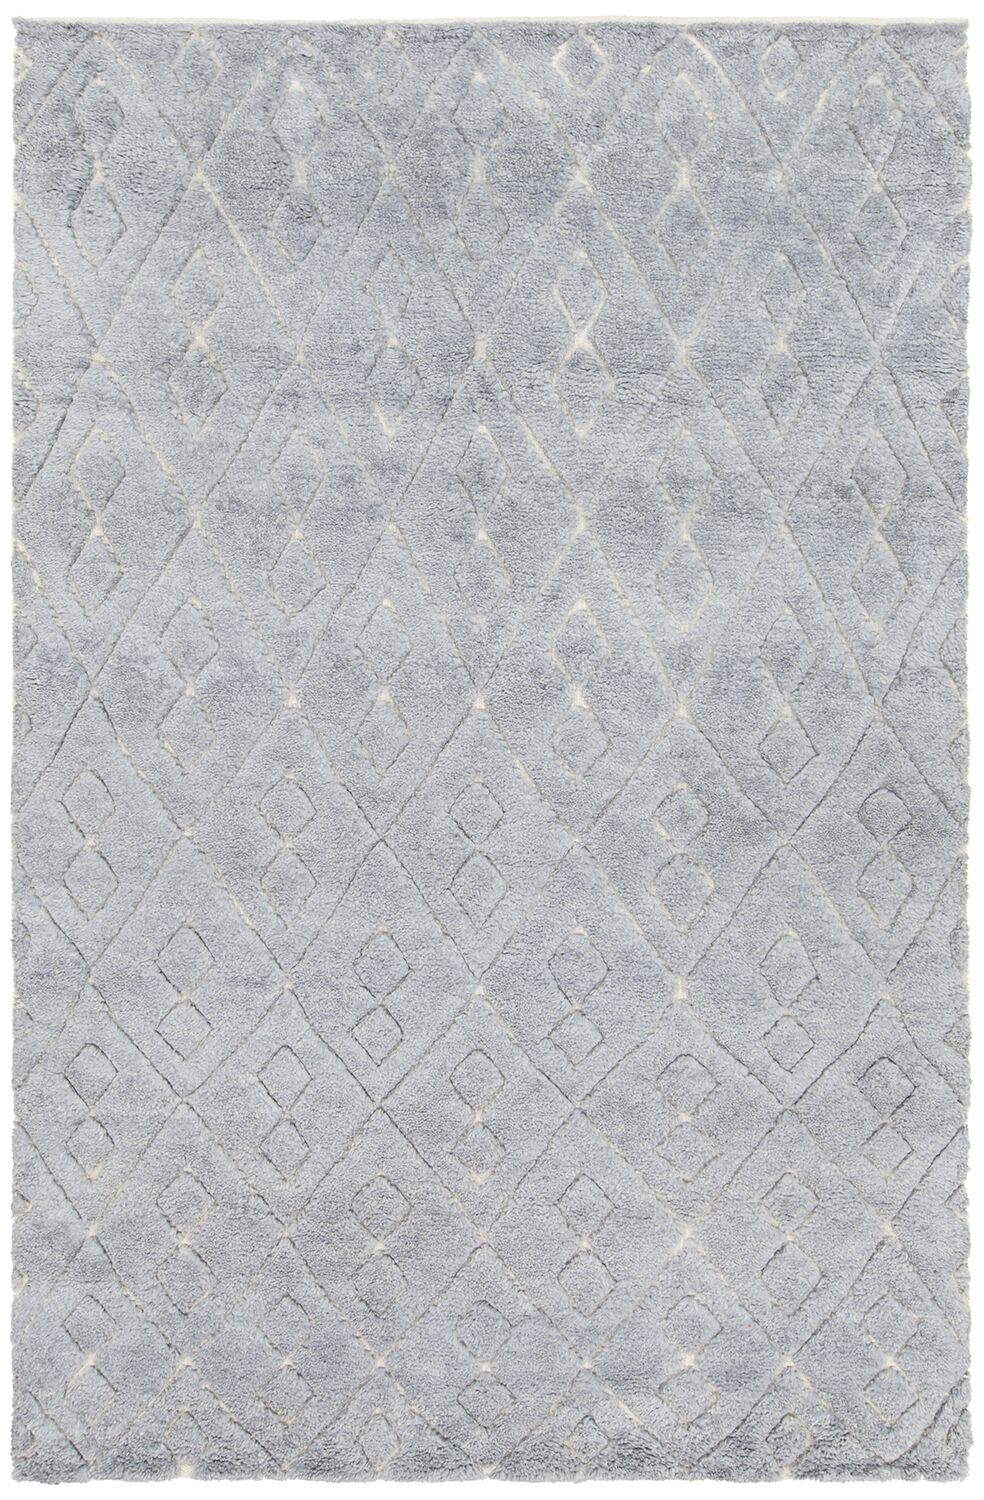 Alland Hand-Knotted Blue Area Rug Rug Size: 7'9